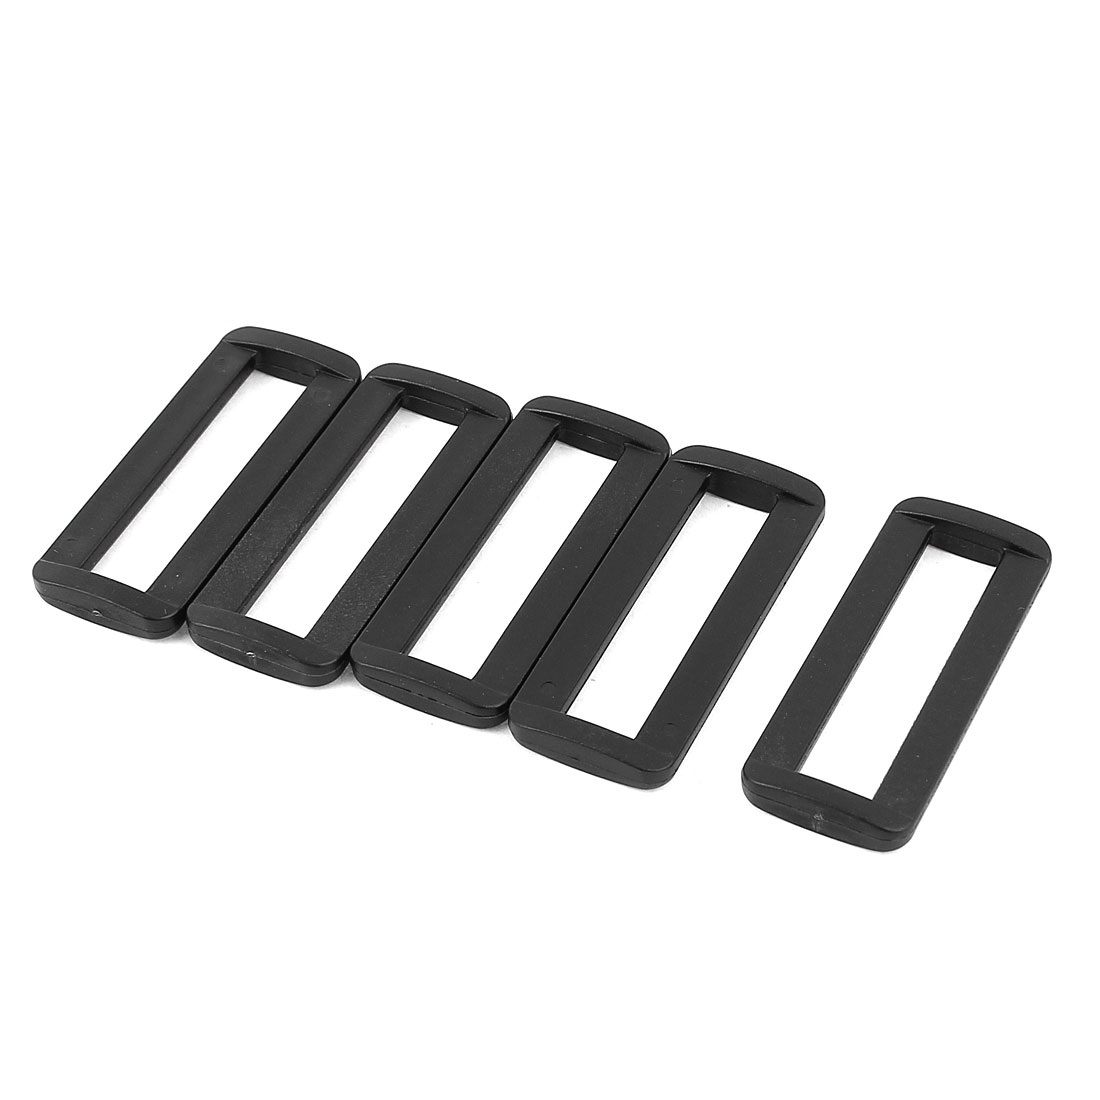 5 Pcs Black Plastic Bag Bar Slides Buckles for 50mm Webbing Strap